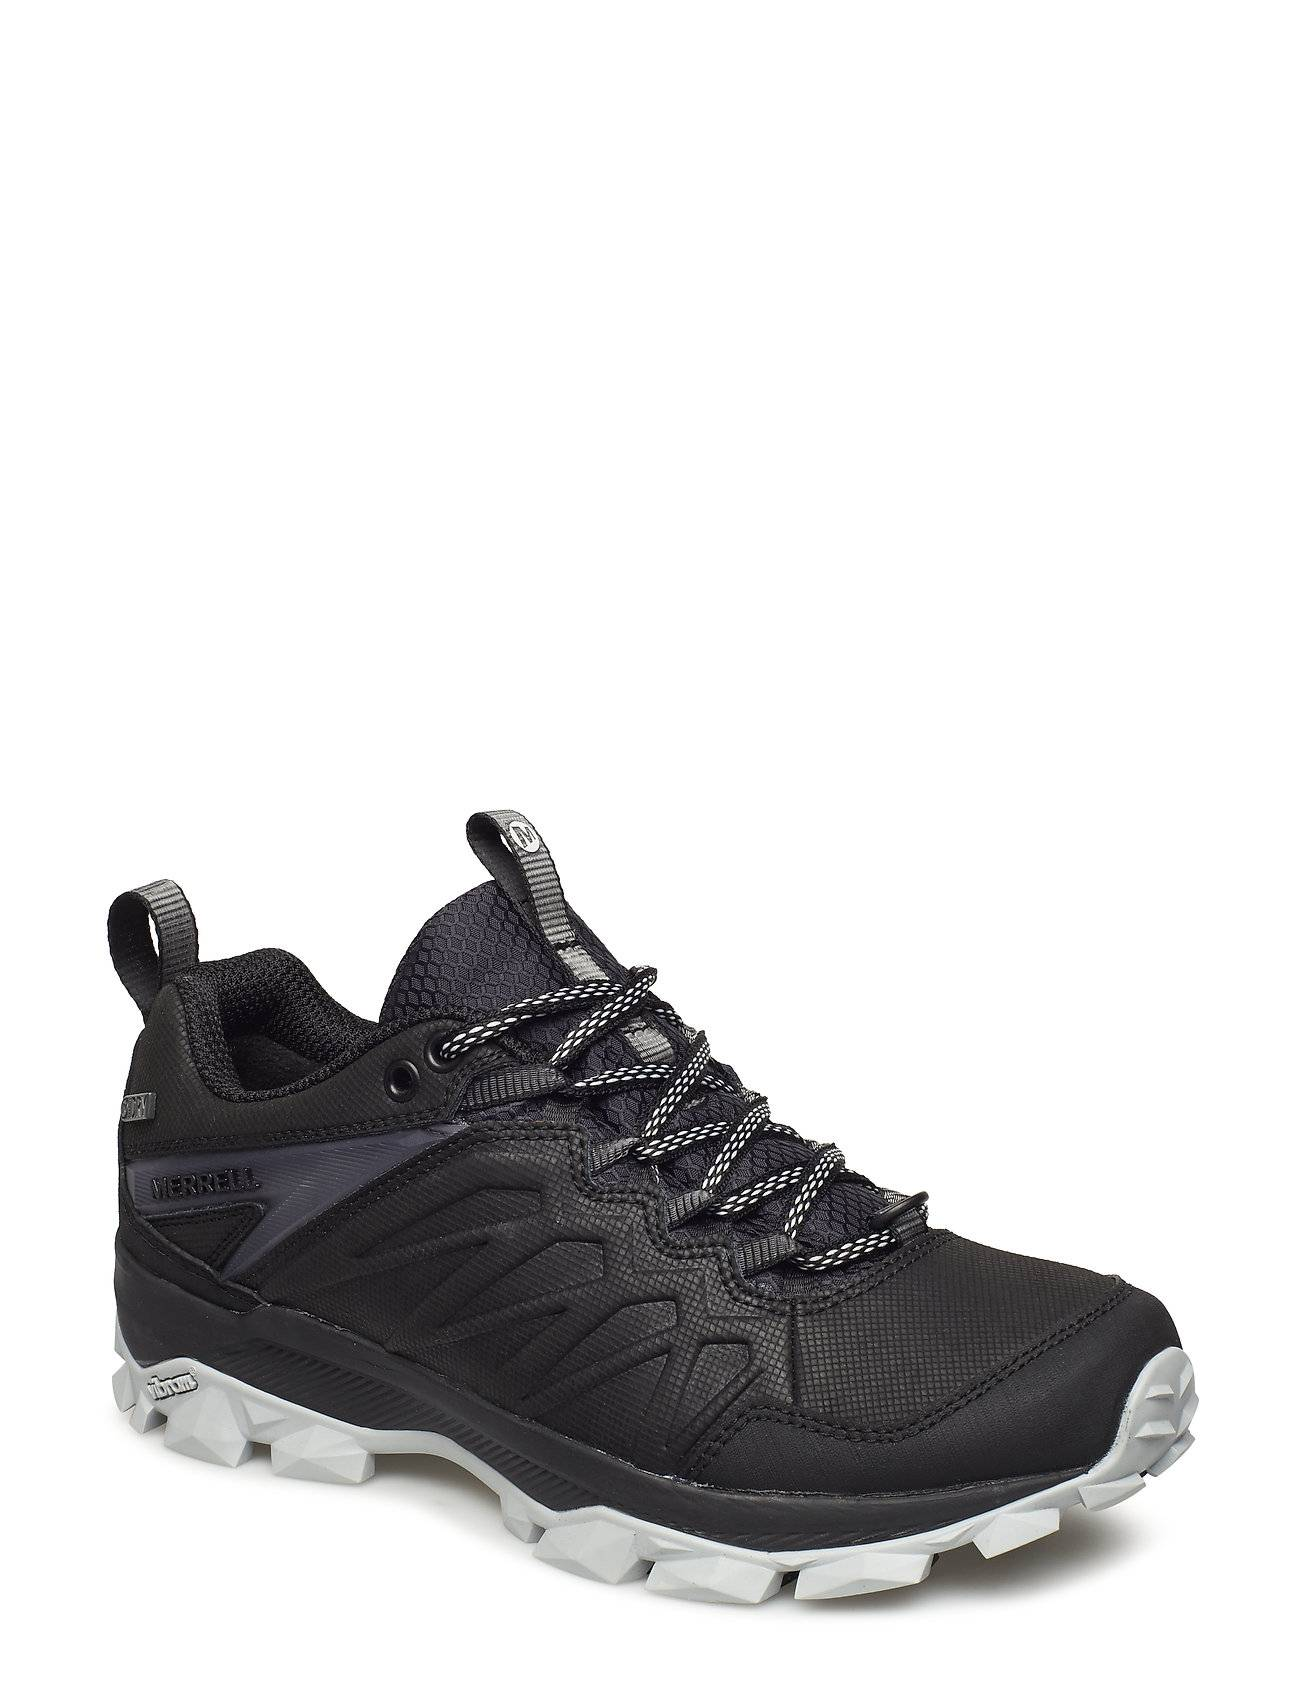 Merrell Thermo Freeze Wp - Arctic Grip